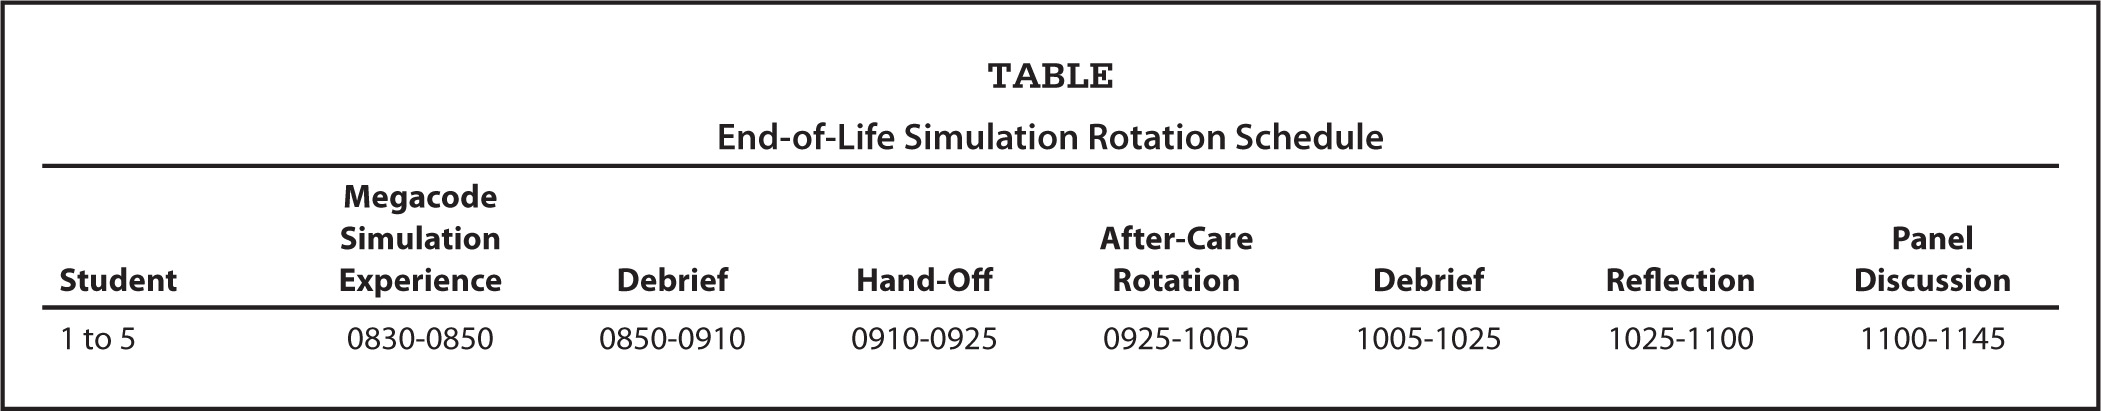 End-of-Life Simulation Rotation Schedule